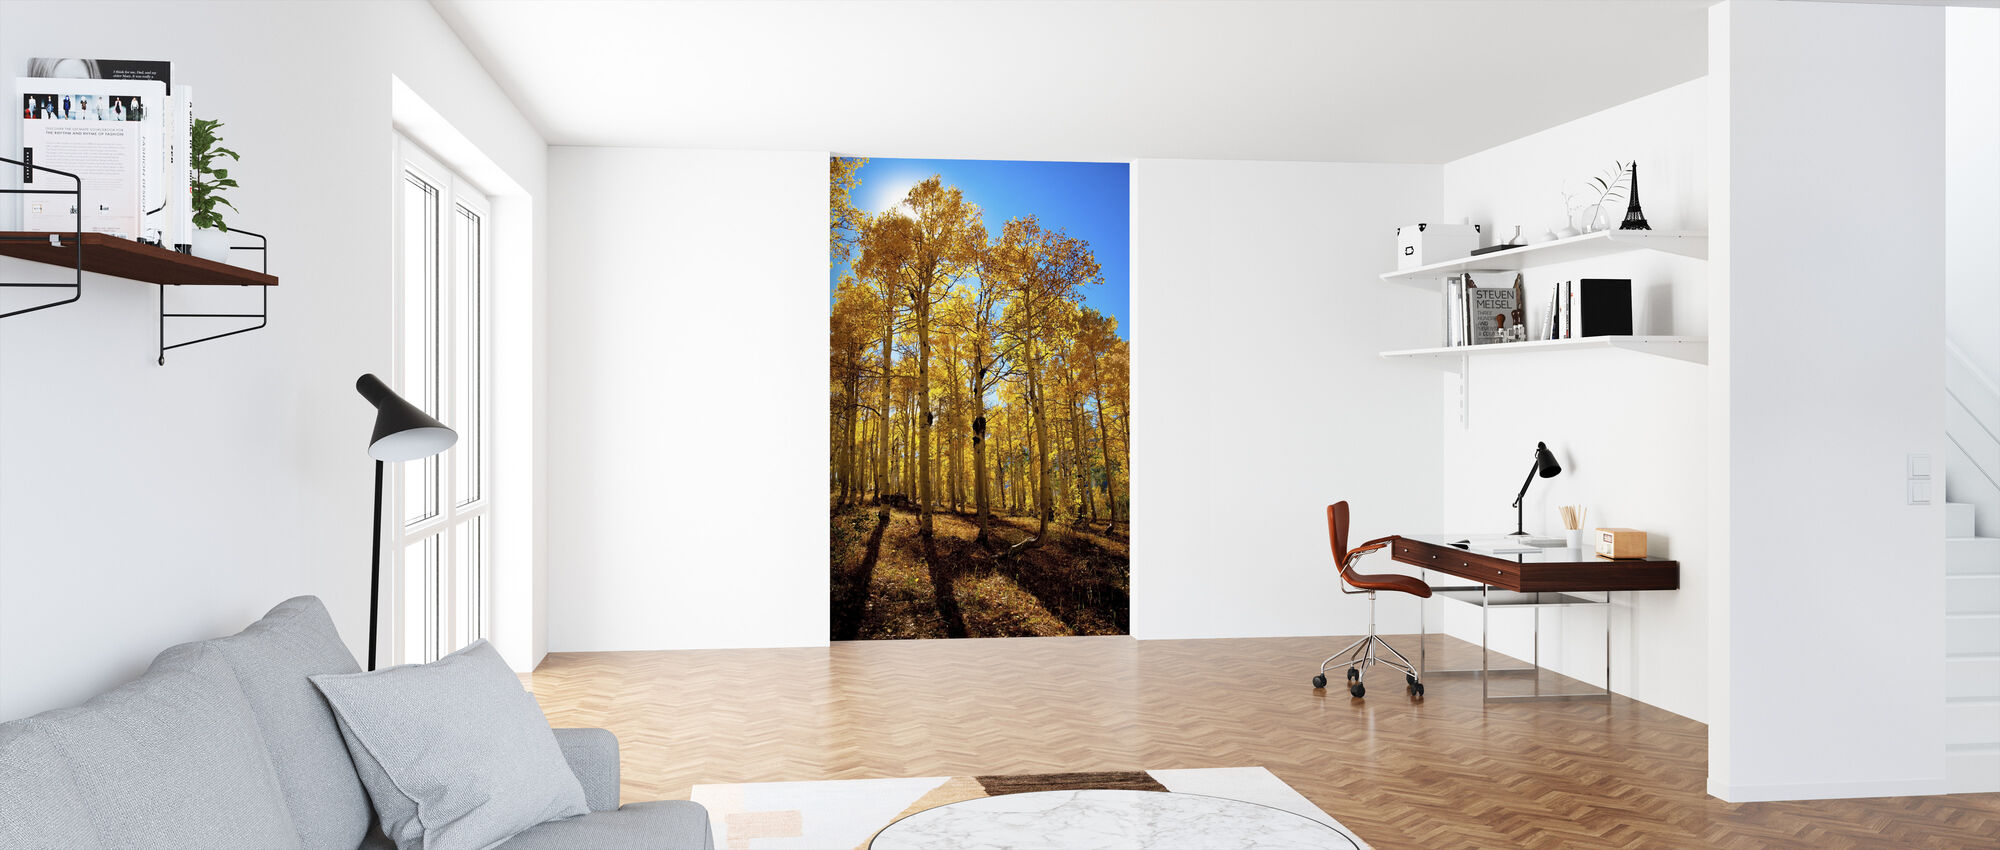 Aspen Trees and Blue Sky - Wallpaper - Office